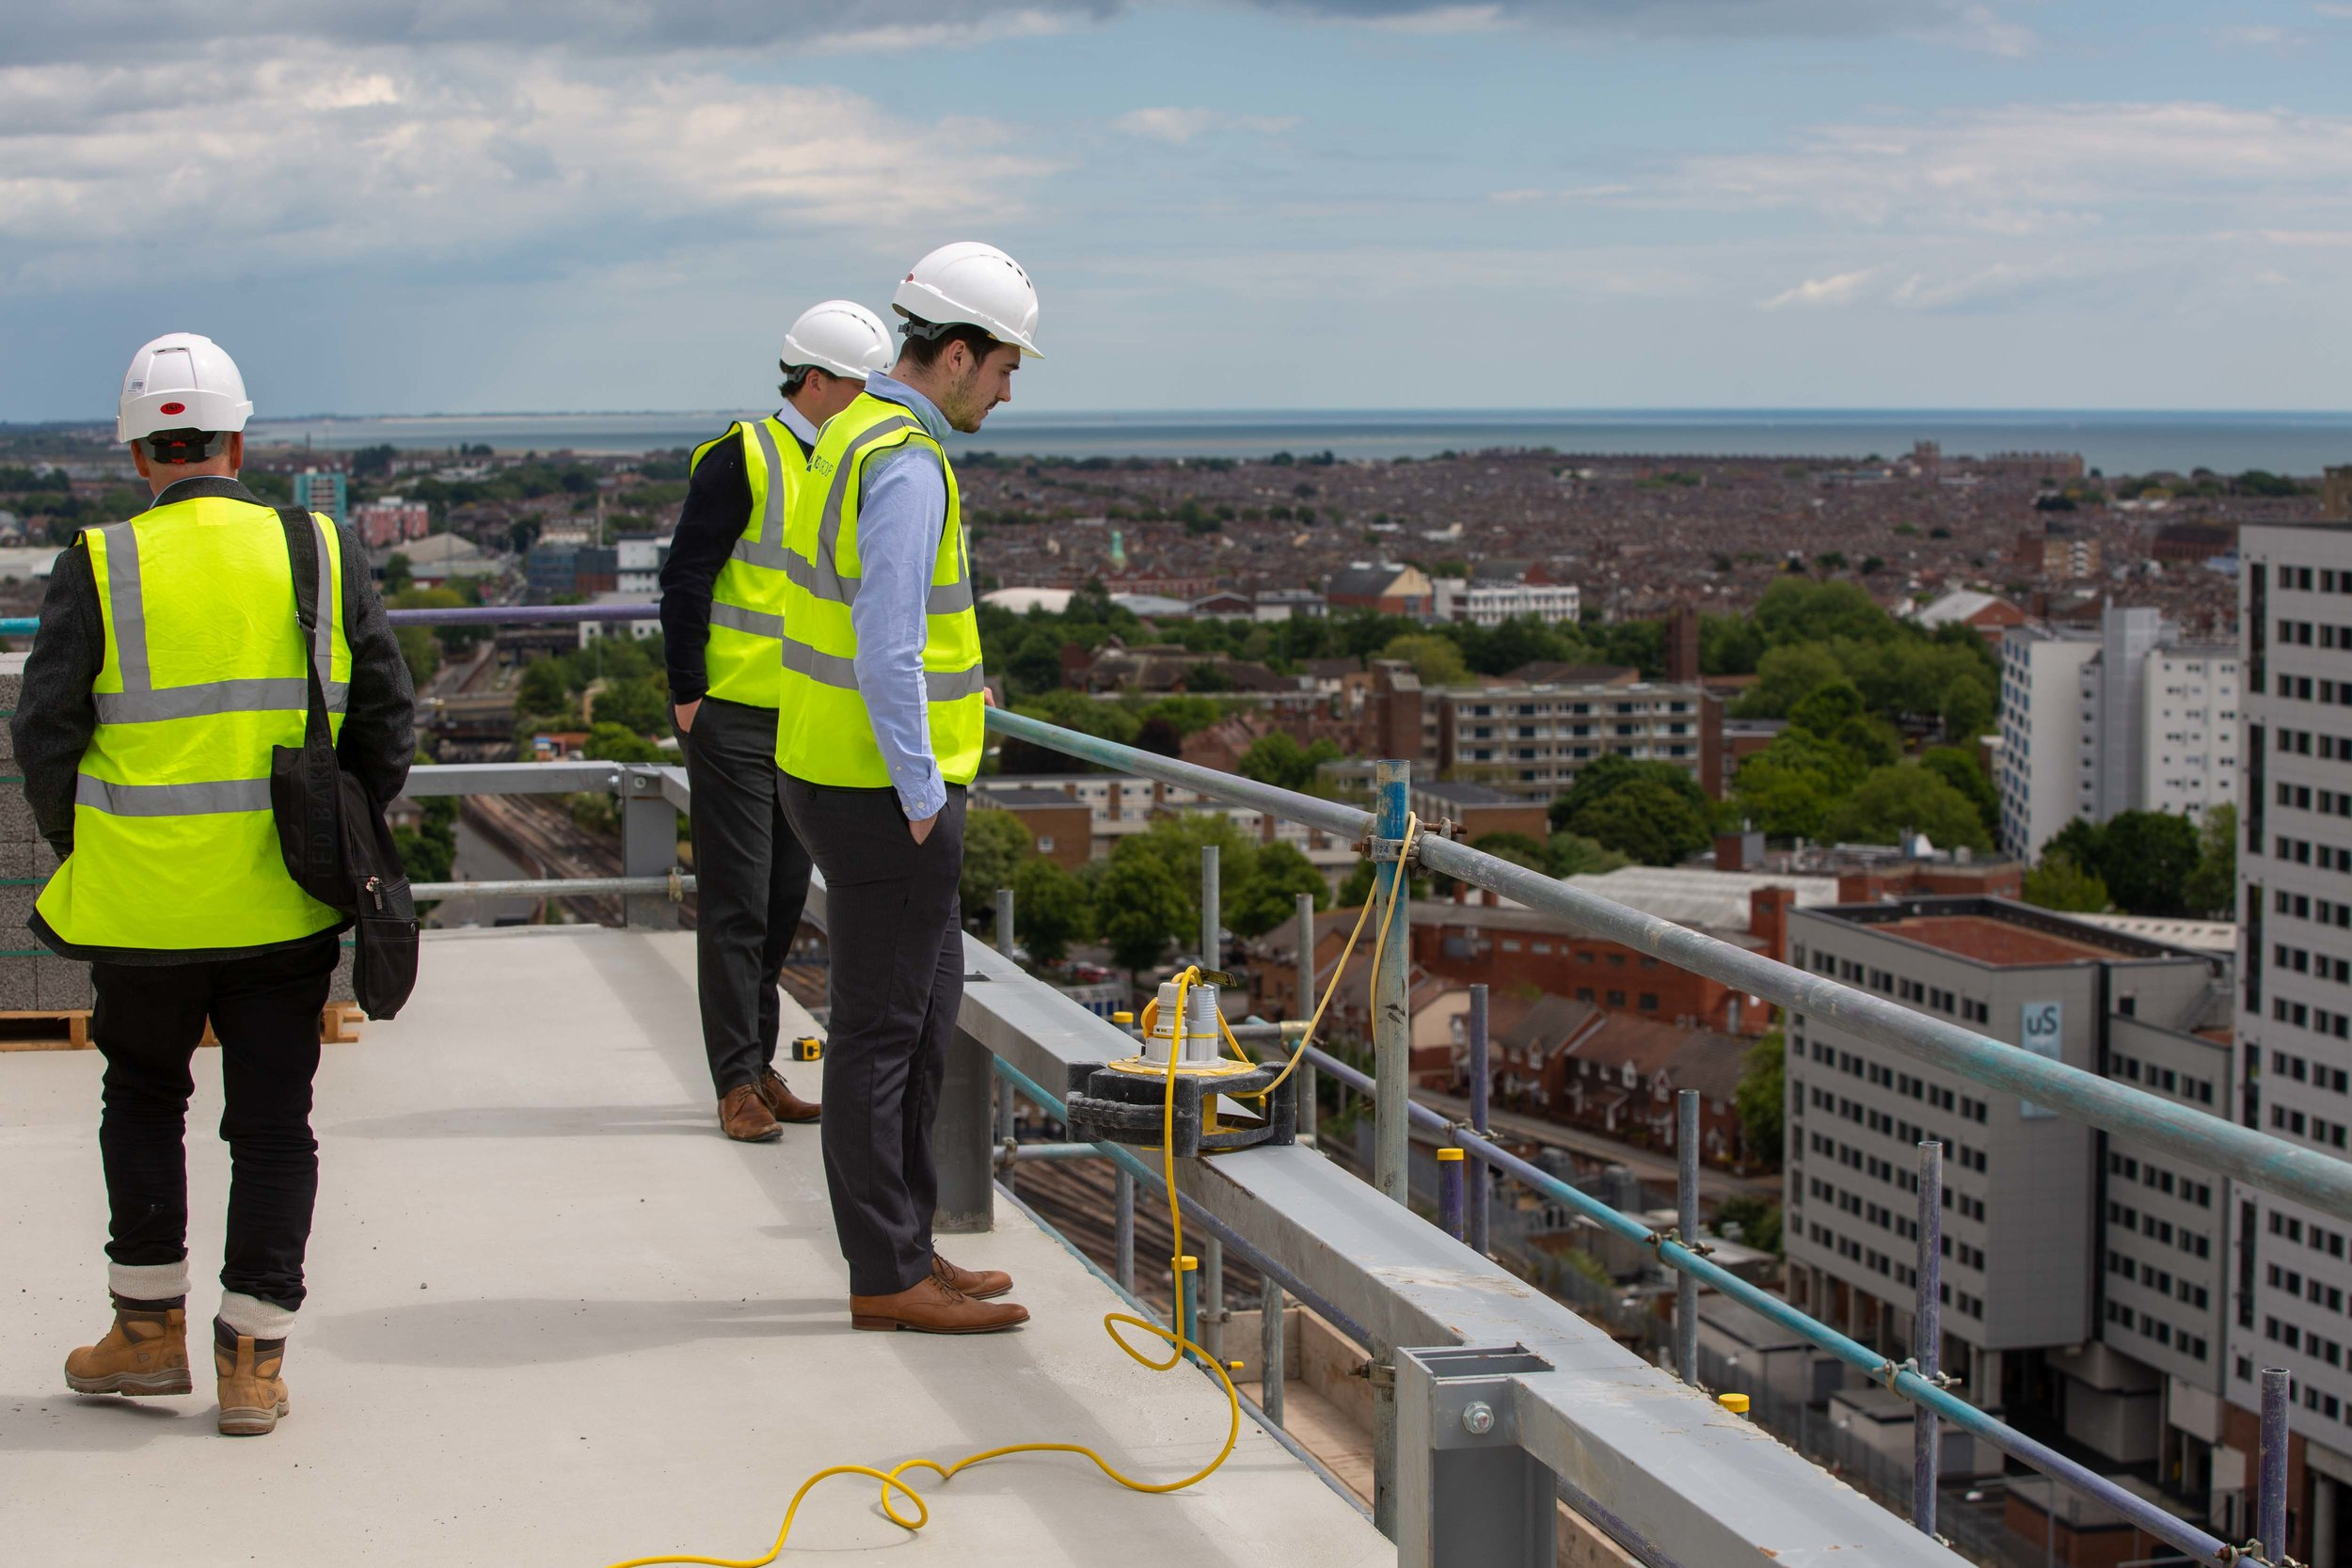 Stanhope House Topping Out 28.05.19 - Solent Sky Services--75.JPG